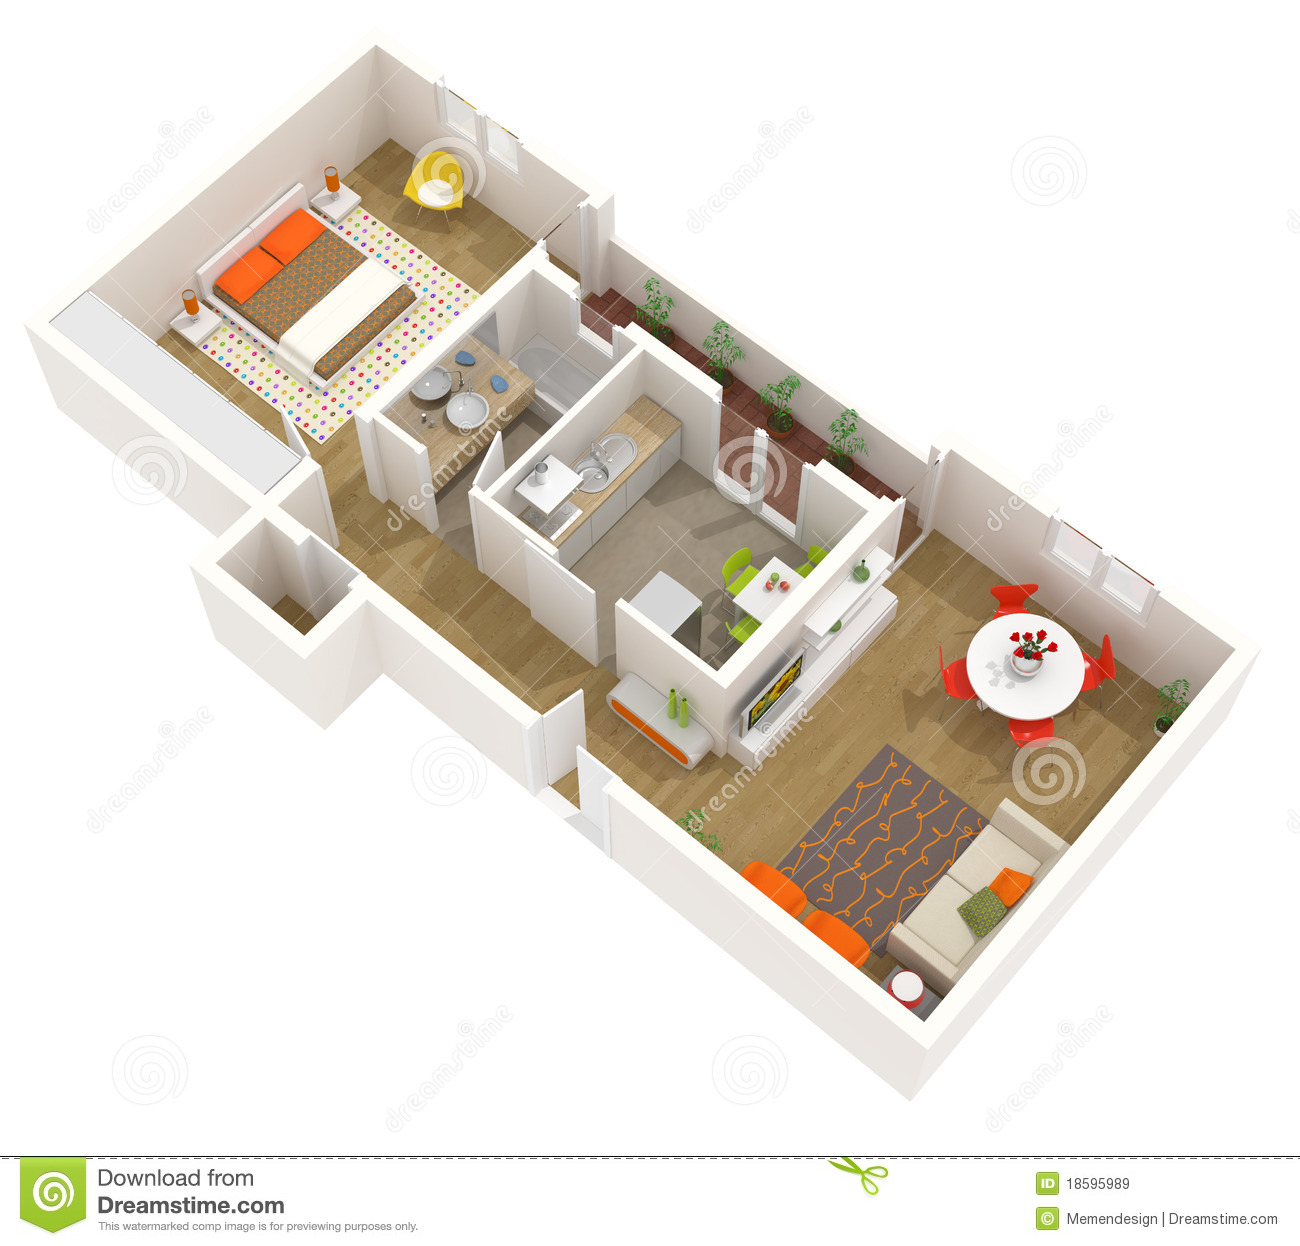 Apartment interior design 3d floor plan stock for Innenarchitektur computerprogramm